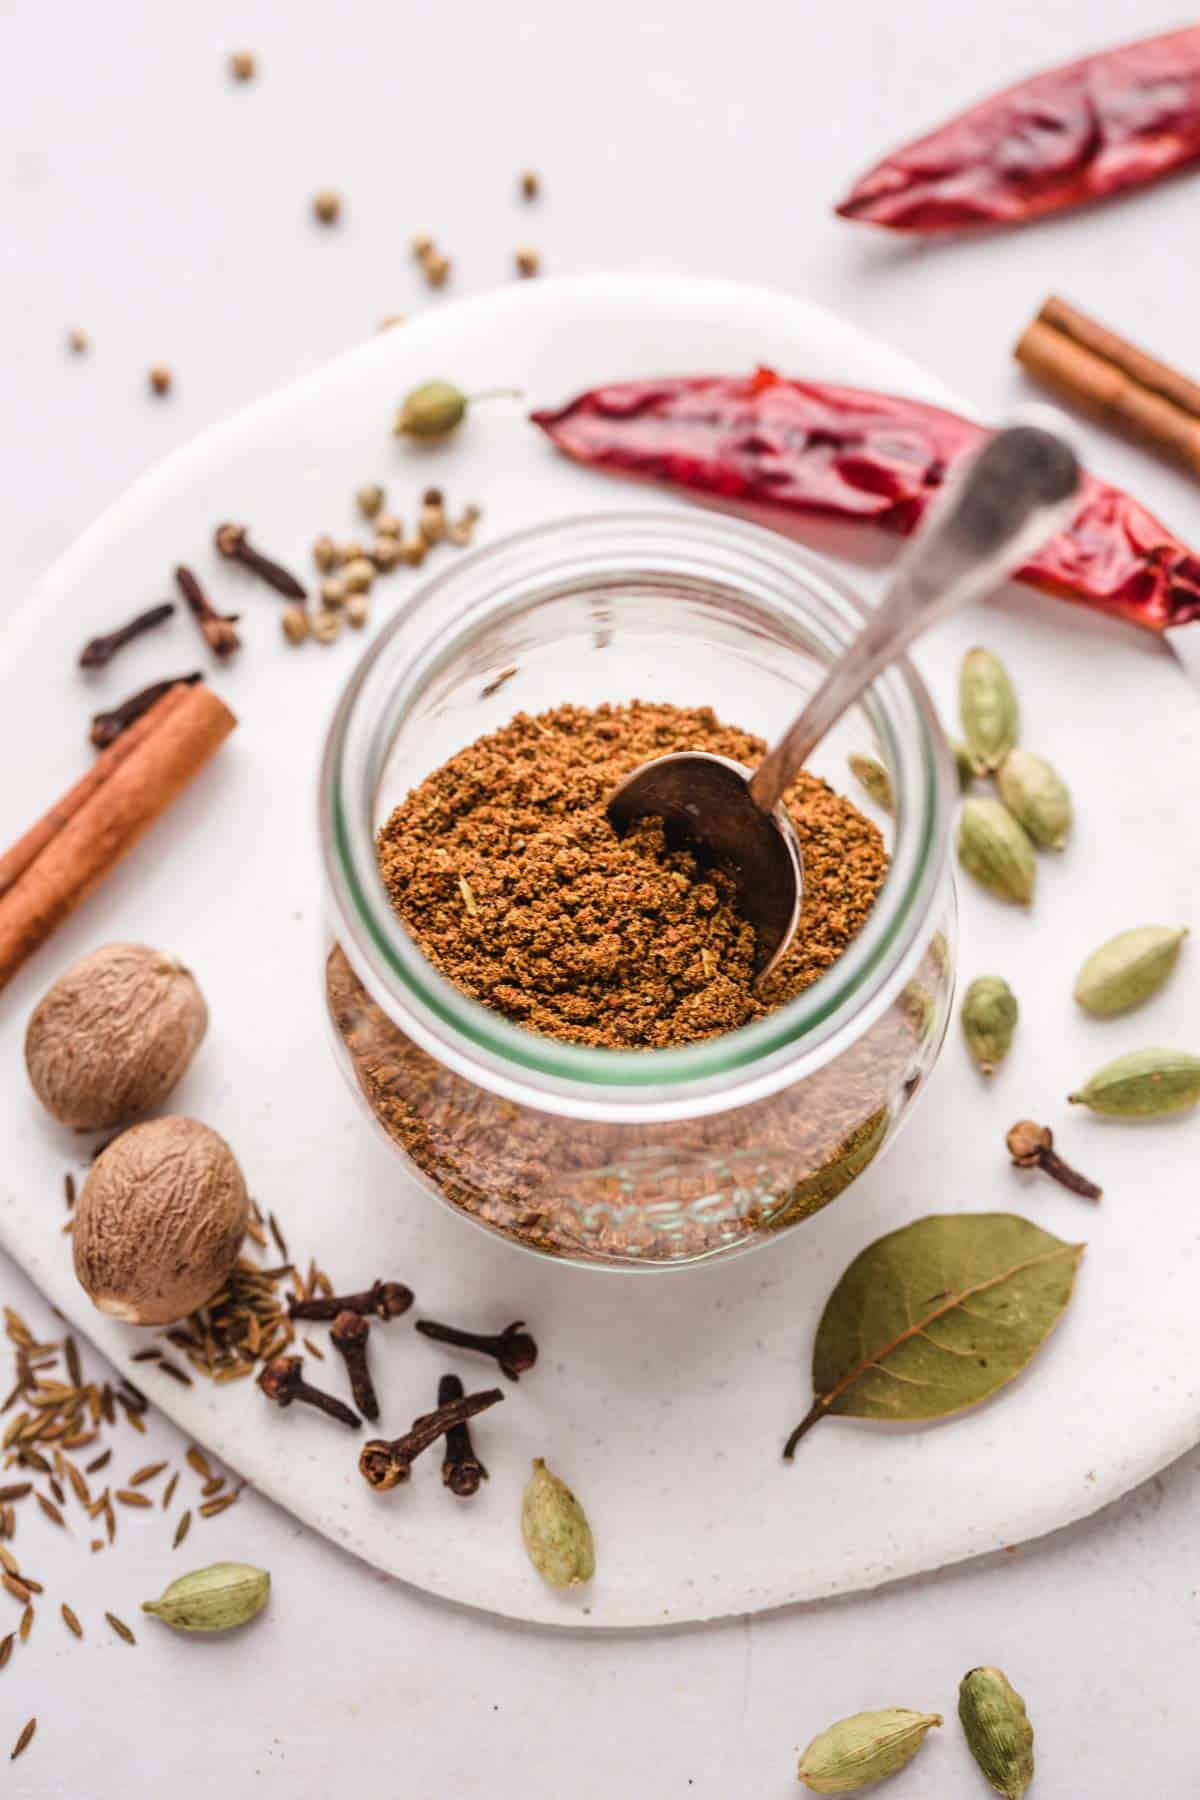 A small Weck jar filled with Garam Masala and a small teaspoon